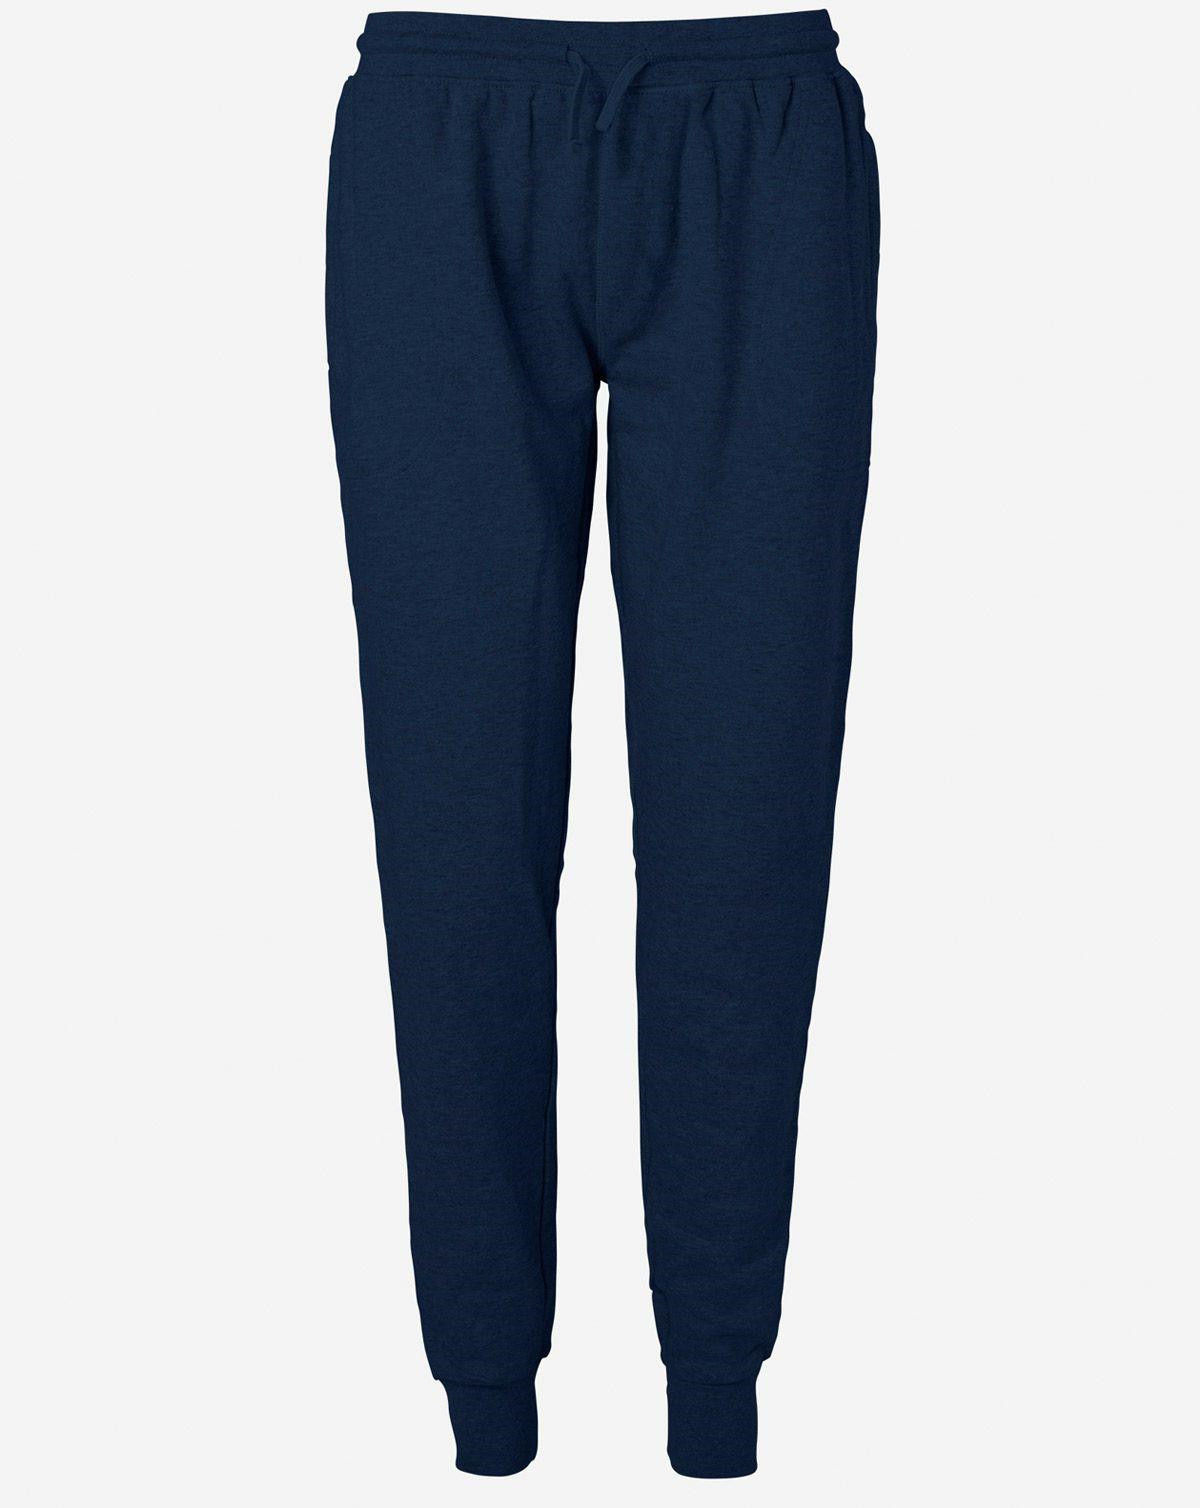 Image of   Neutral Økologisk Unisex Sweatpants w/ Cuff and Zip (Navy, 2XL)